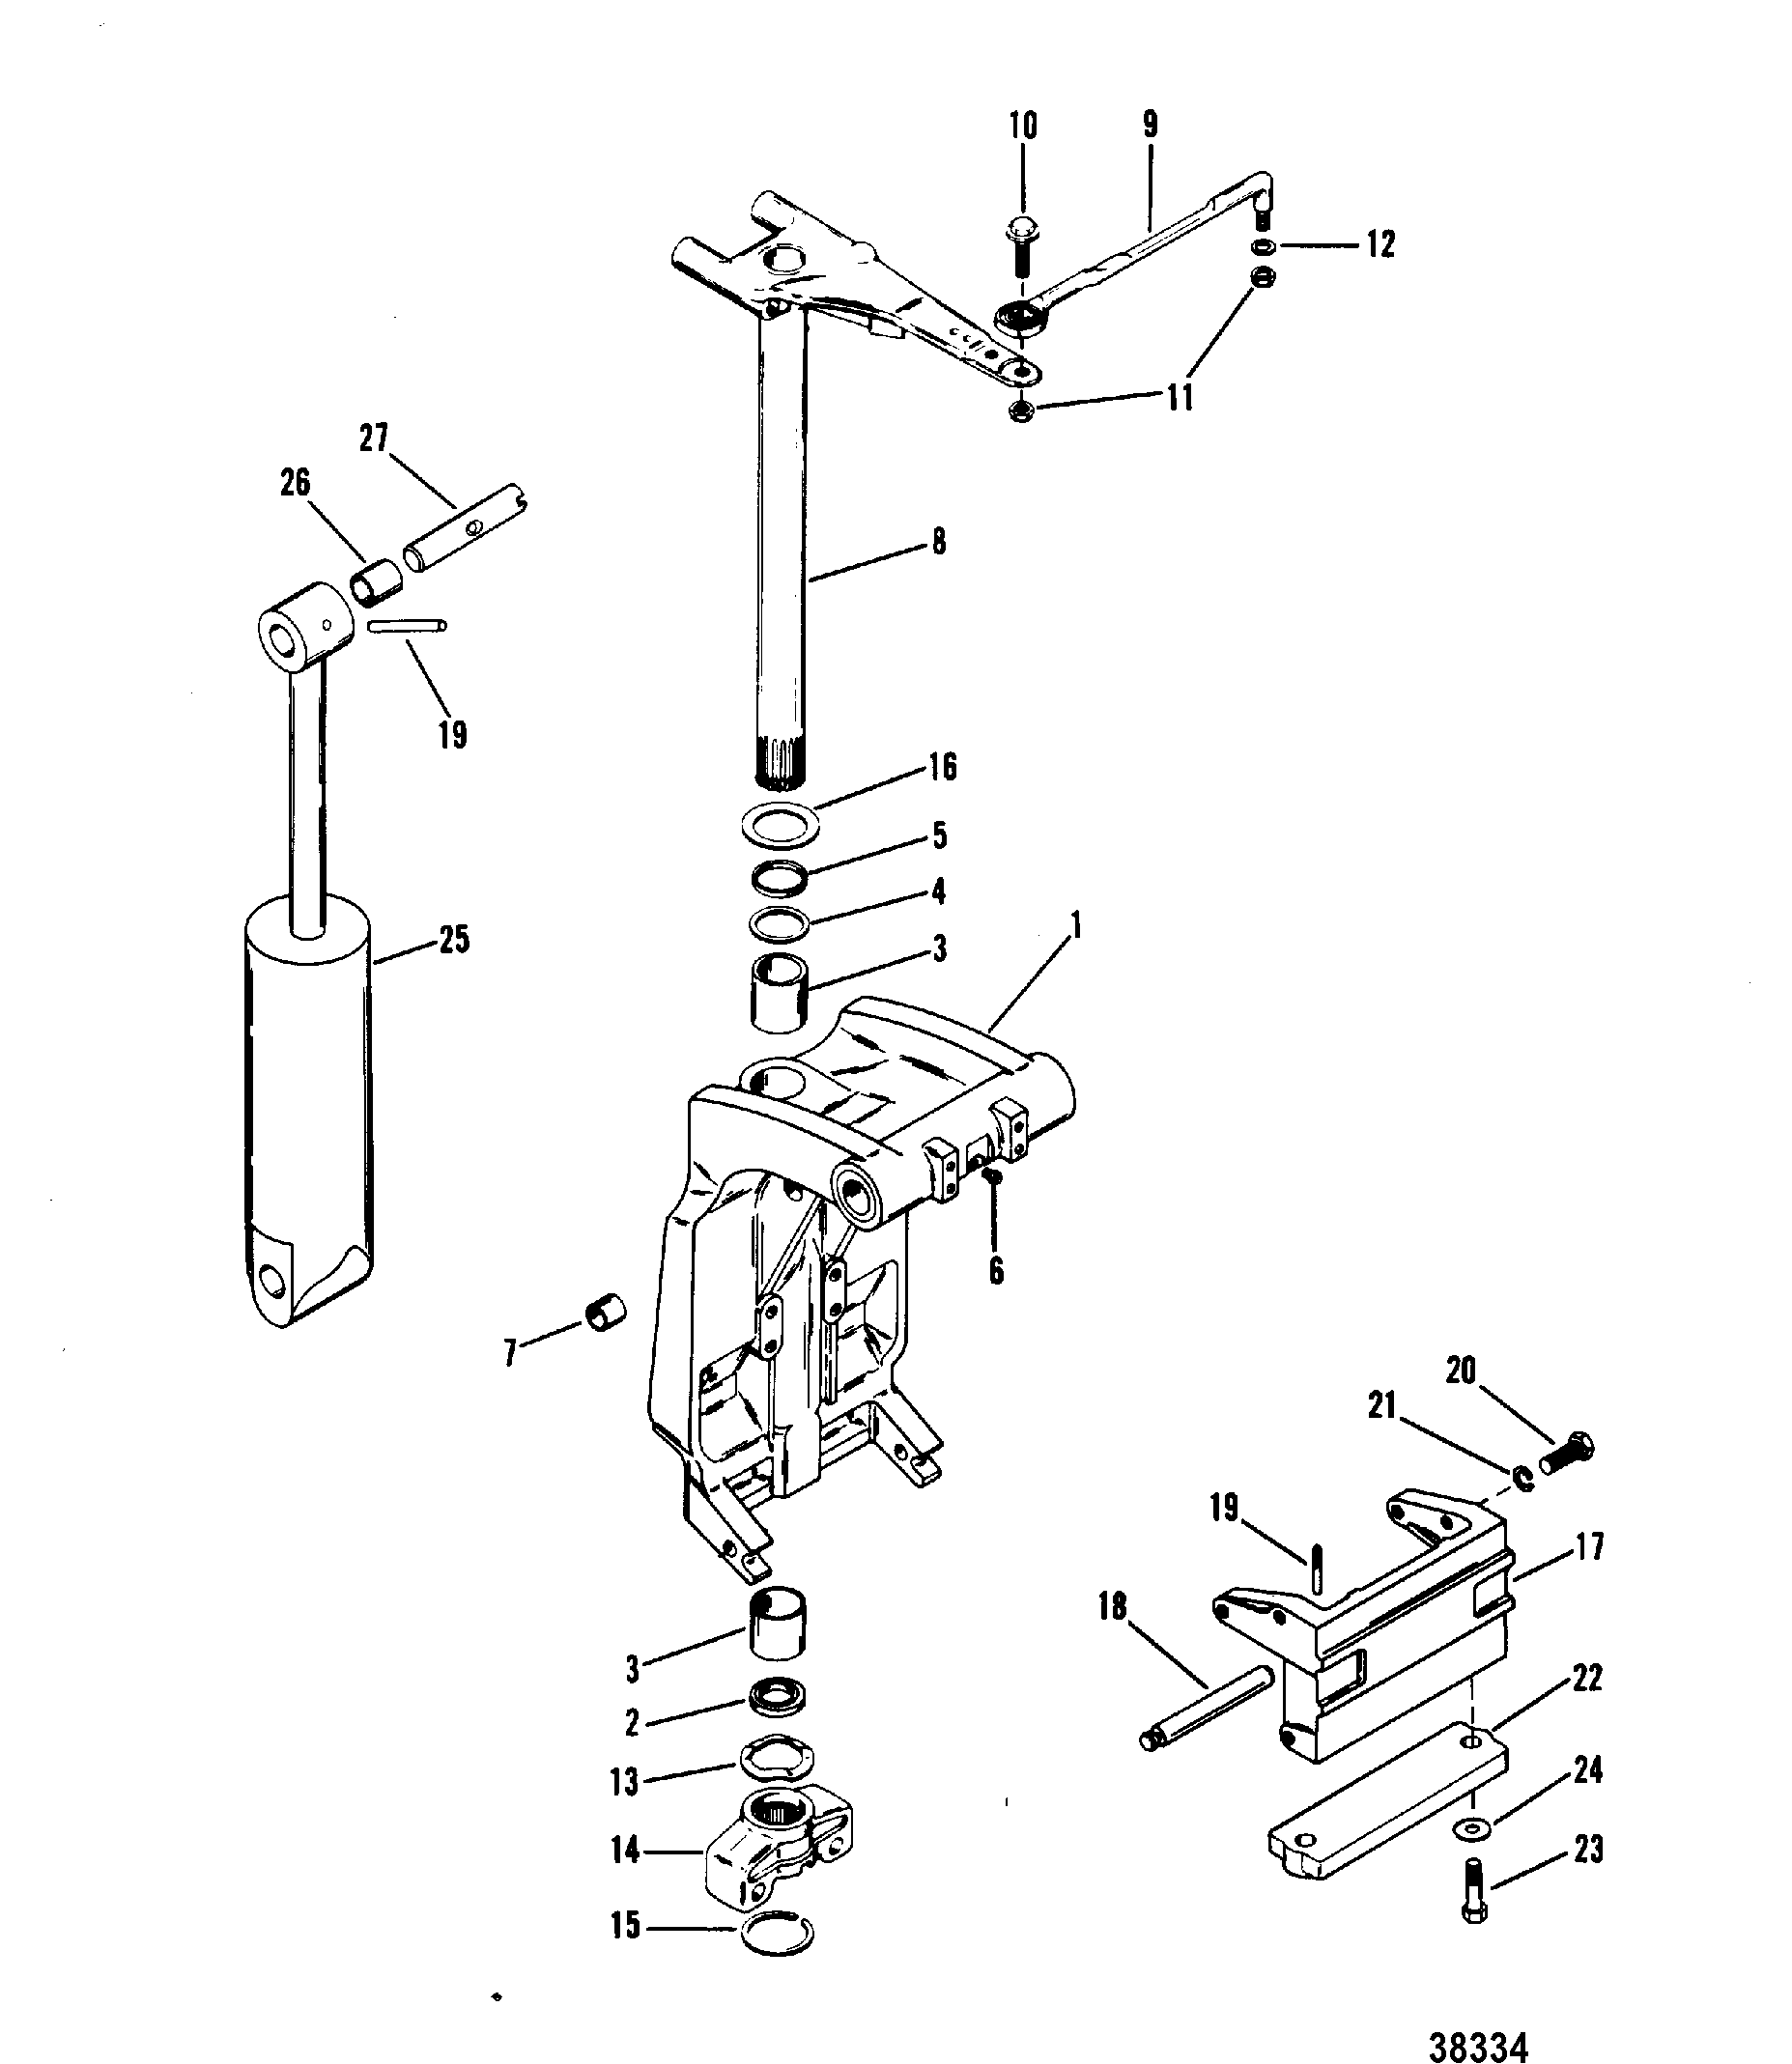 hight resolution of swivel bracket and steering arm for mariner mercury 70 75 80 90 mercury marine mercury outboard 1070717 electrical components diagram